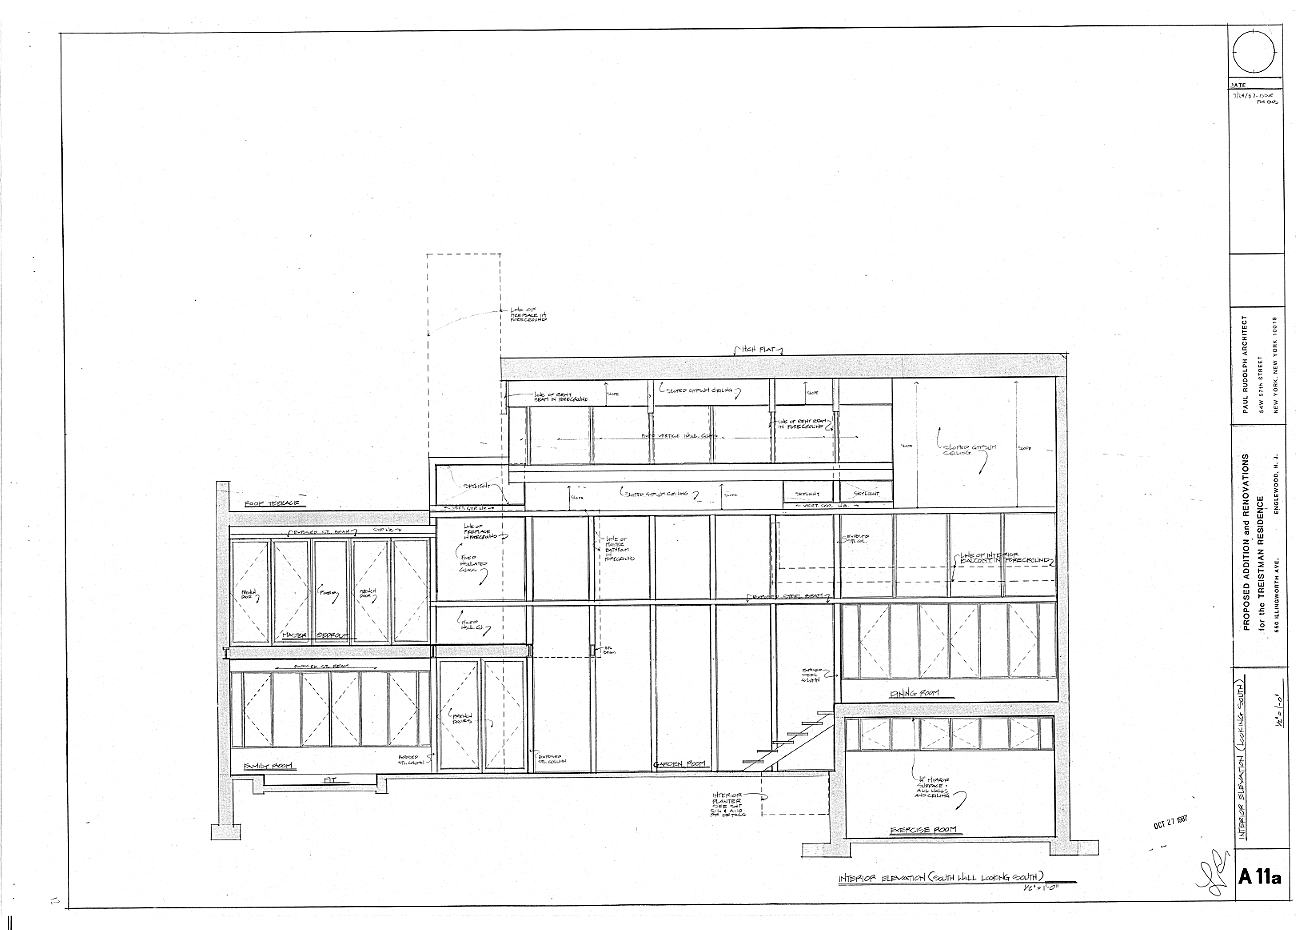 Residence for Mr. and Mrs. Treistman, Englewood, New Jersey.  Interior Elevations, Sheet A11a.